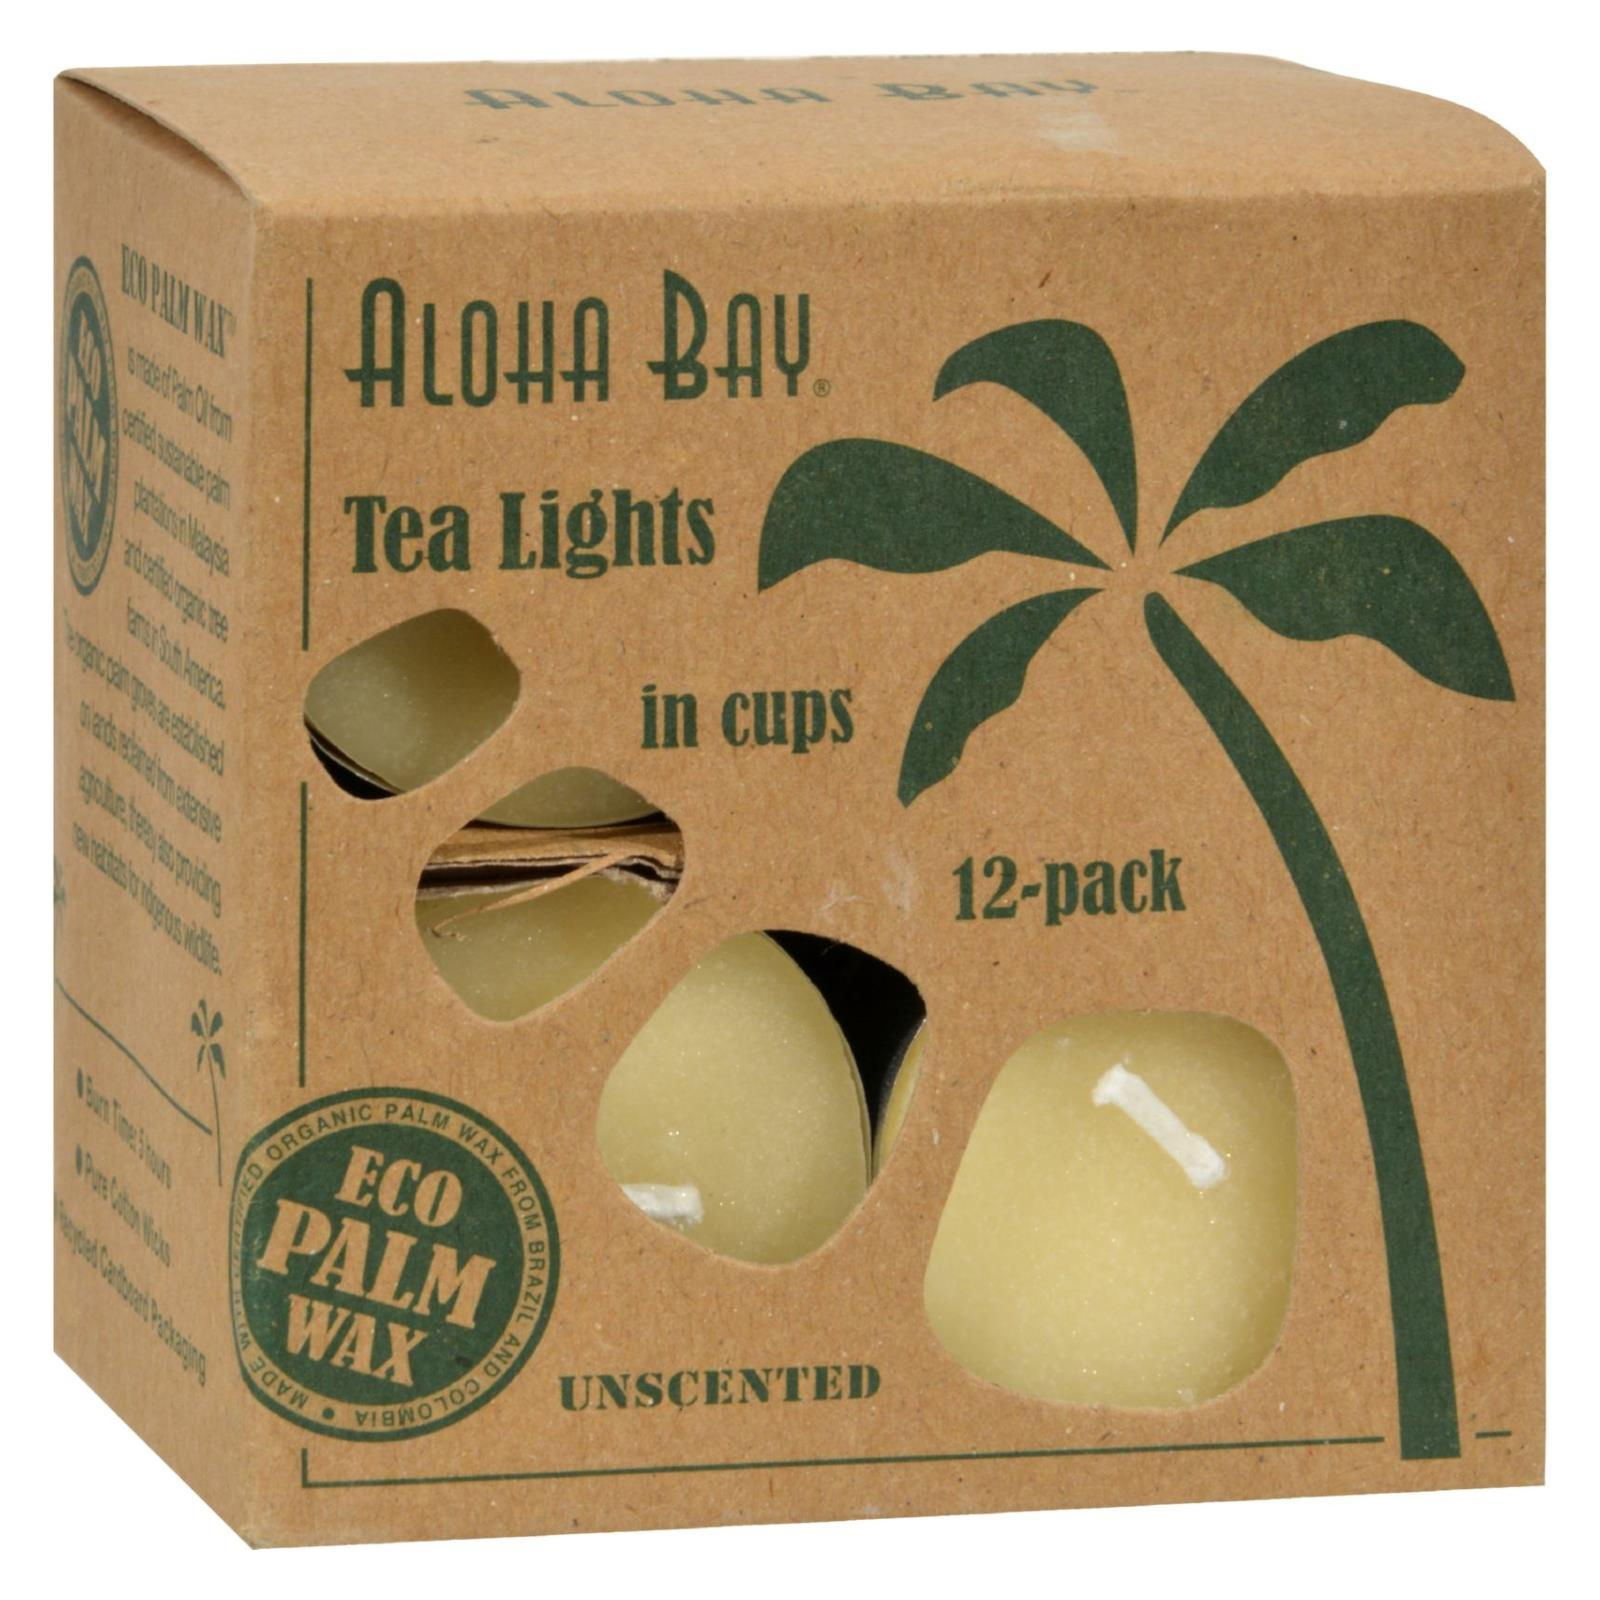 Buy Aloha Bay Palm Wax Tea Lights with Aluminum Holder Cream - 12 Candles - Tealights from Veroeco.com